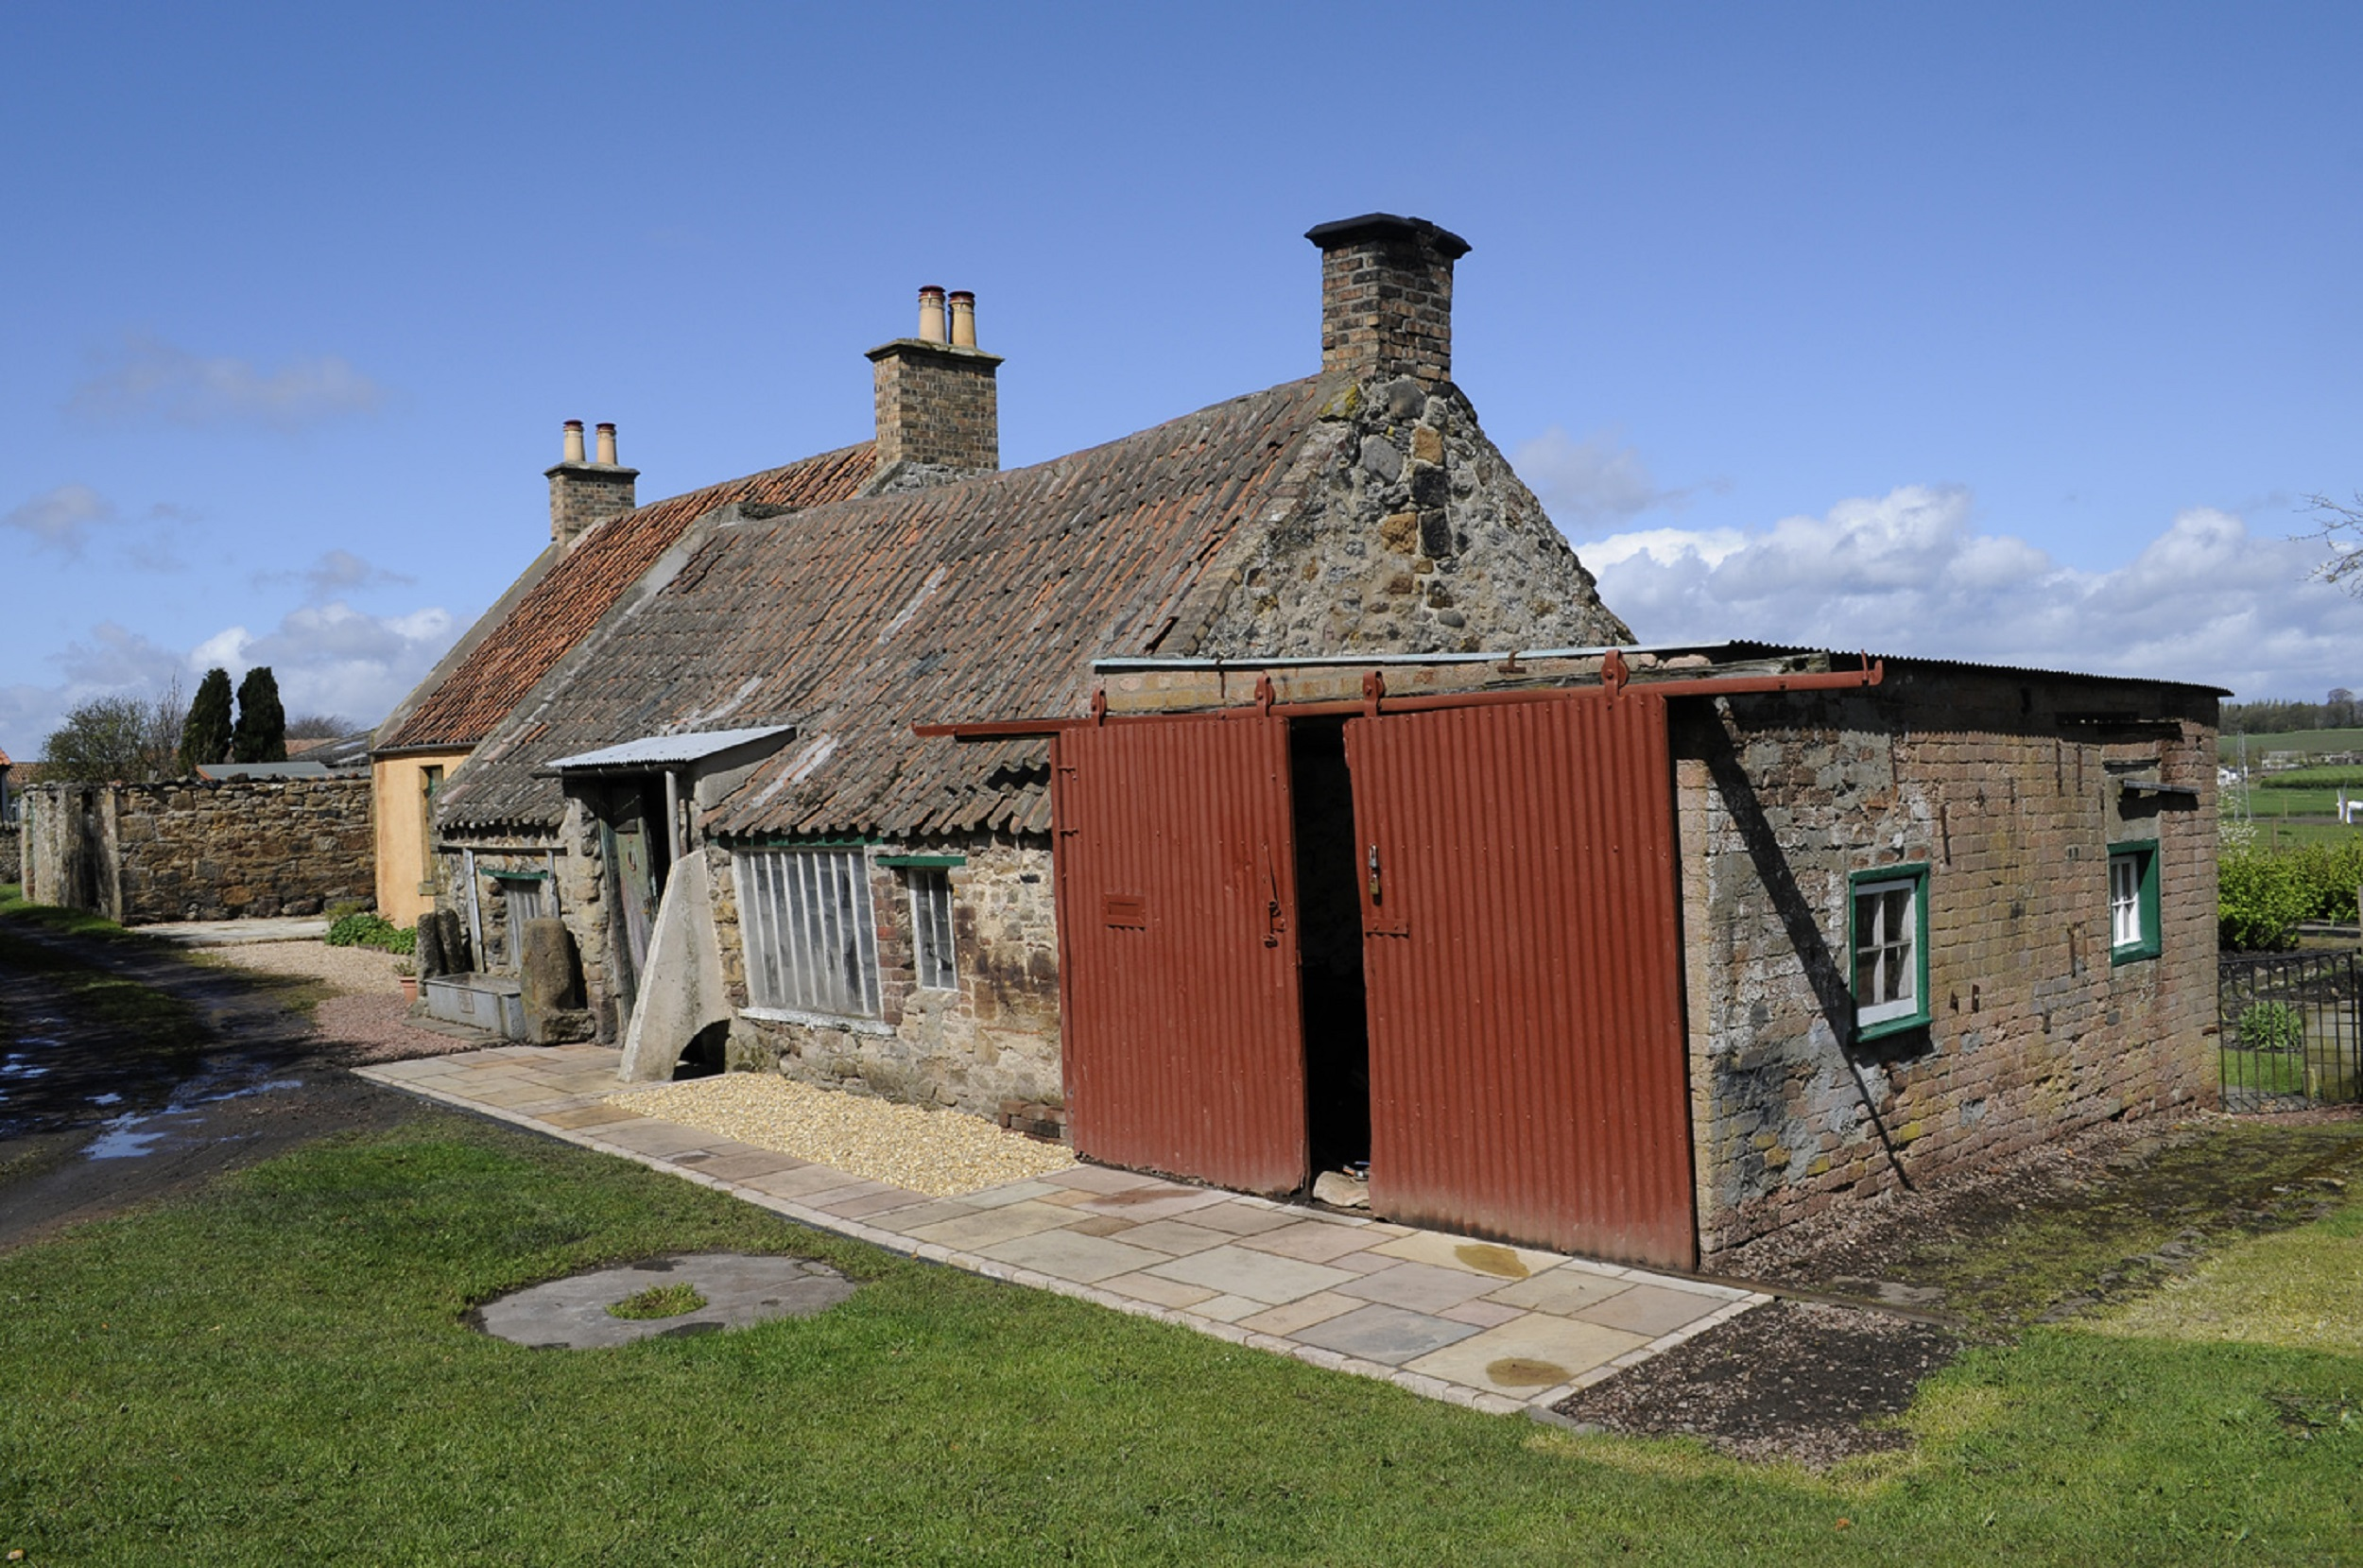 Exterior of Cousland Smiddy near Dalkeith in a consumer PR story by public relations experts Holyrood PR